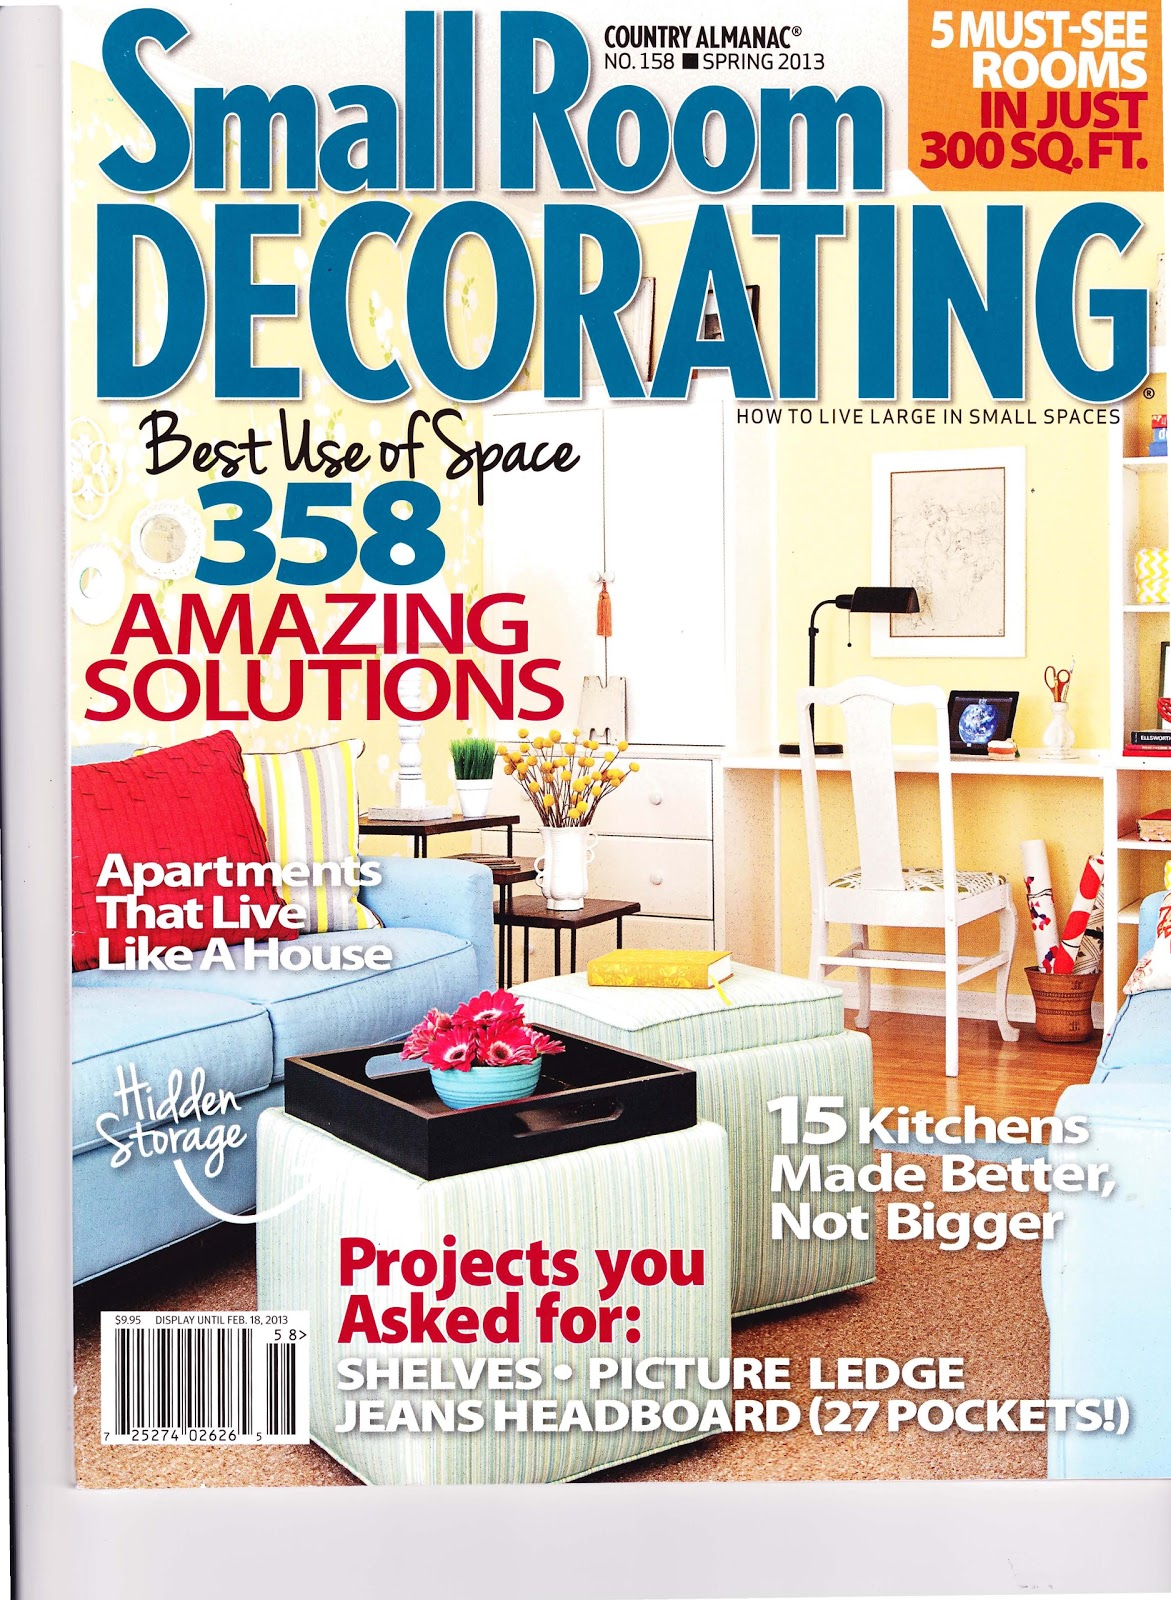 emi interior design inc small room decorating magazine 2013. Black Bedroom Furniture Sets. Home Design Ideas